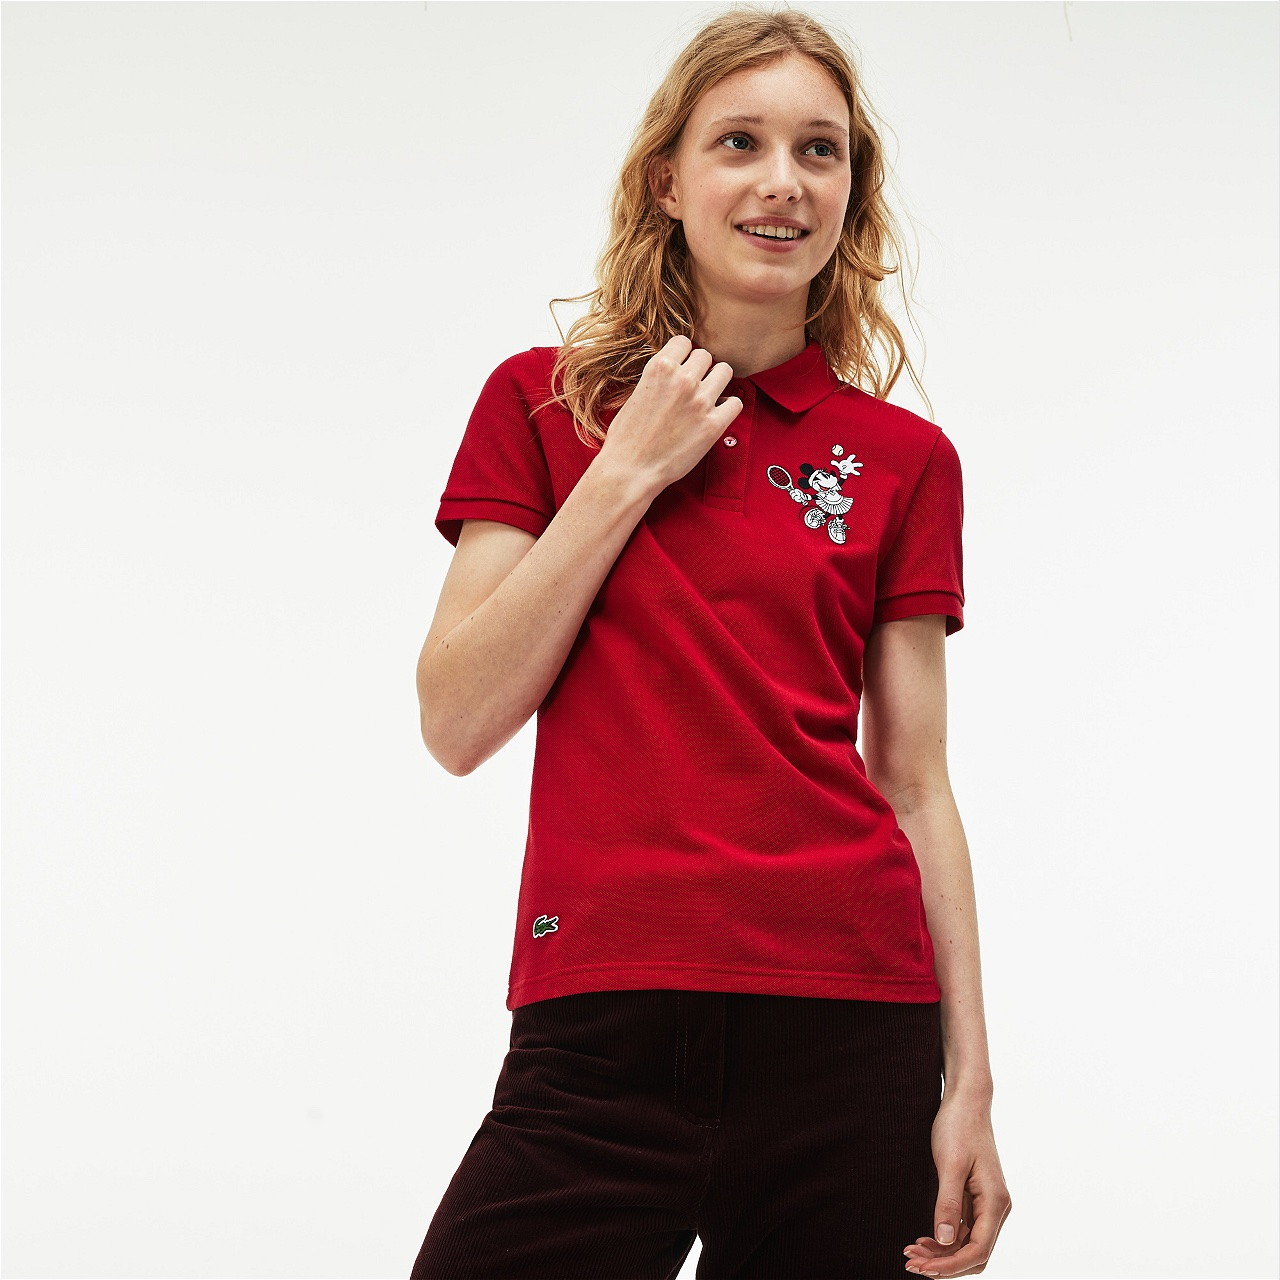 c133c66af Children don't have to miss out either, as the adult polo shirts and  sweatshirts come in children's sizes as well, with two models which are  complemented by ...